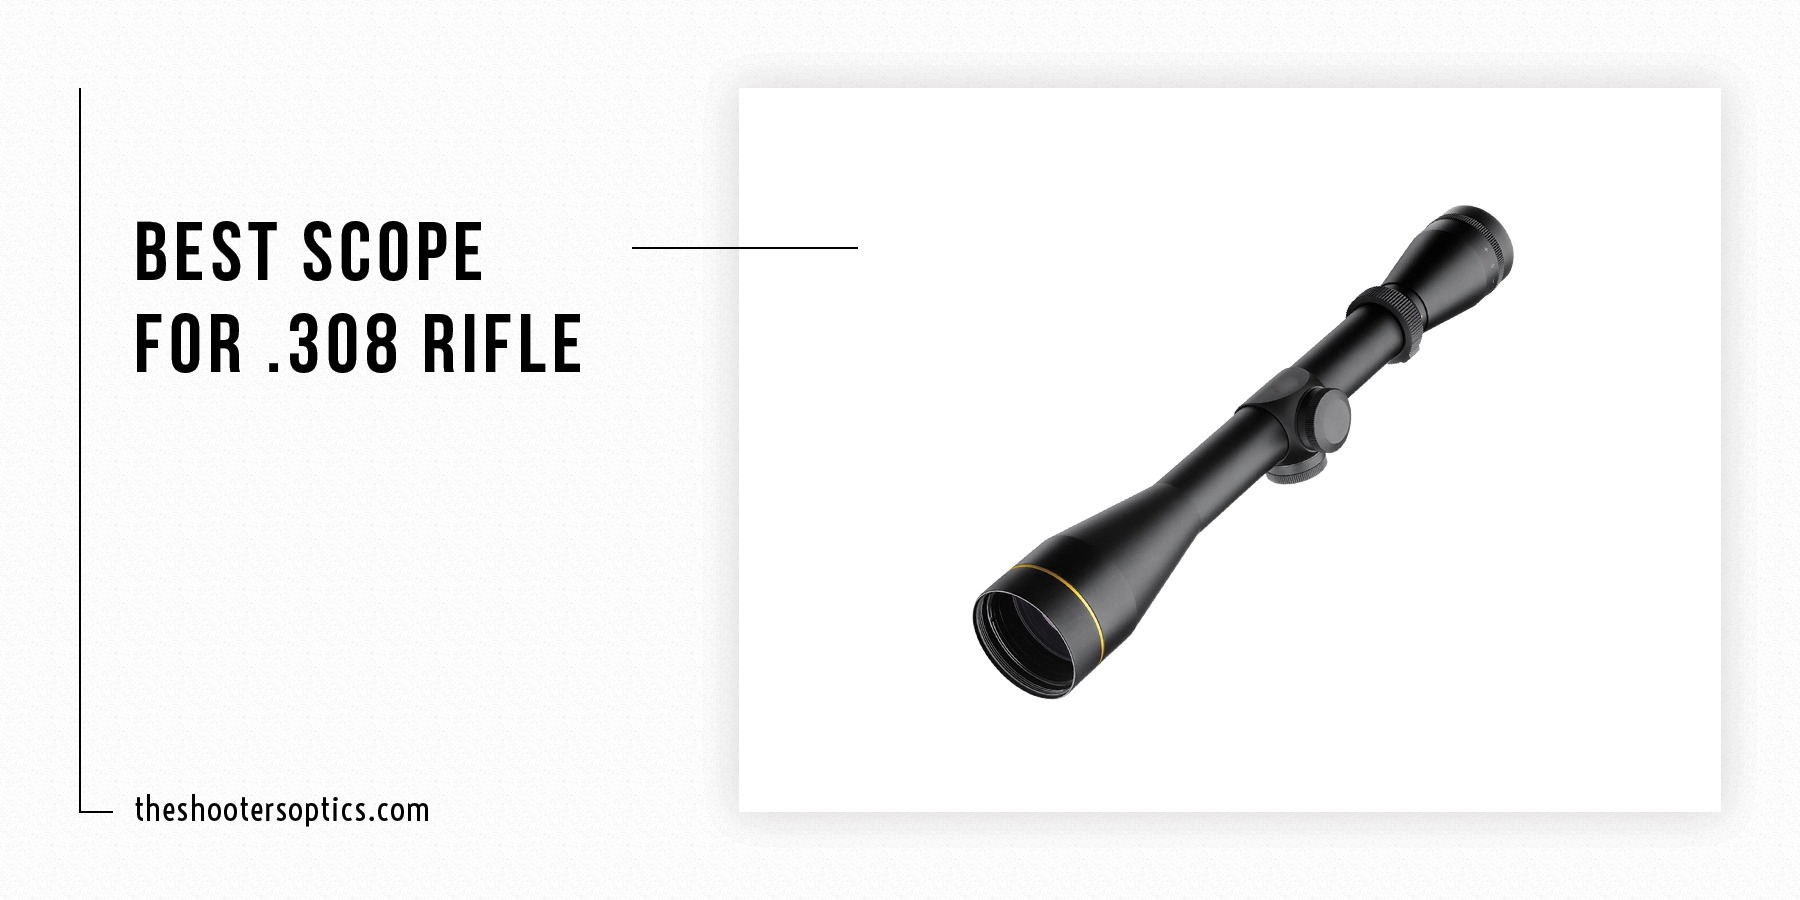 Top 8 Best Scope for .308 Rifle: Reviews & Buyers' Guide